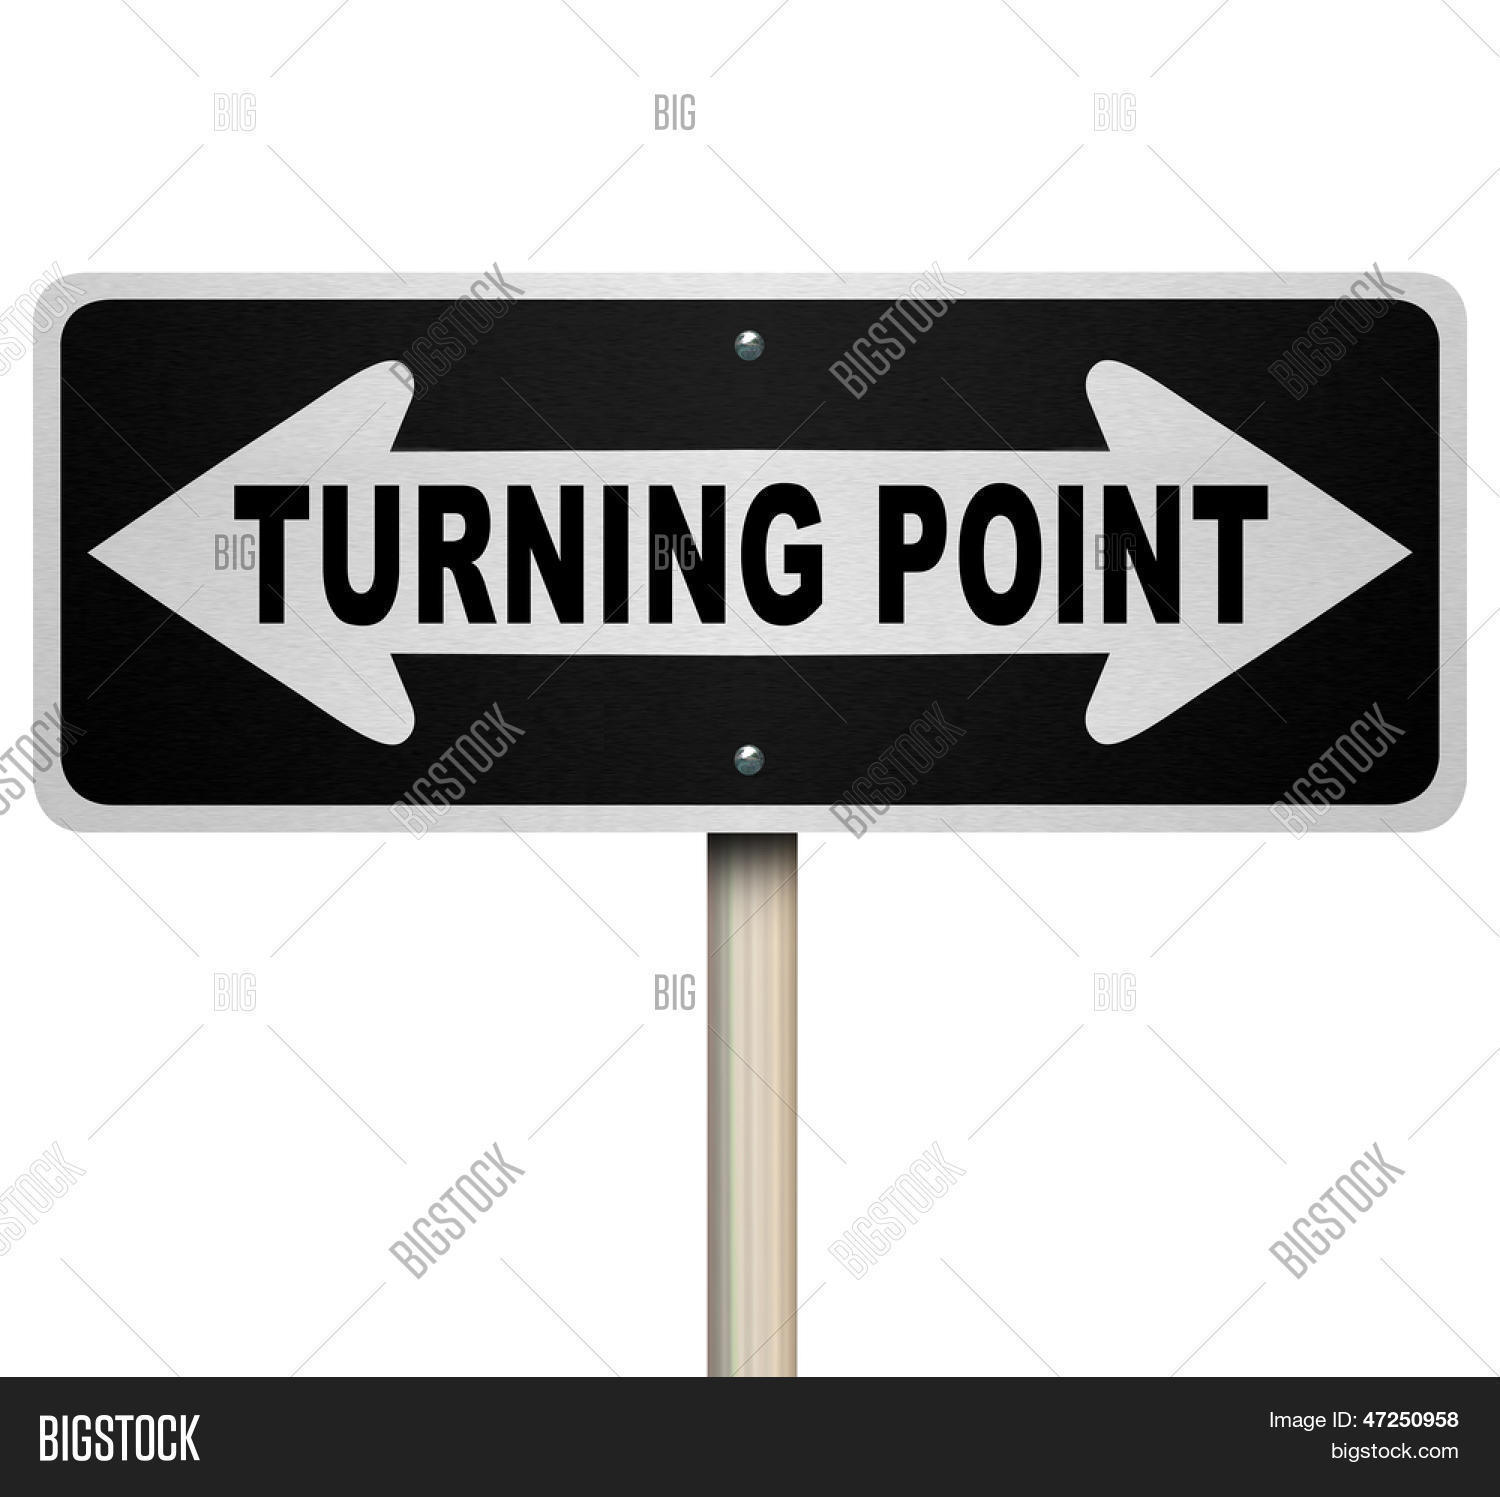 Road Sign Words Image & Photo (Free Trial) | Bigstock